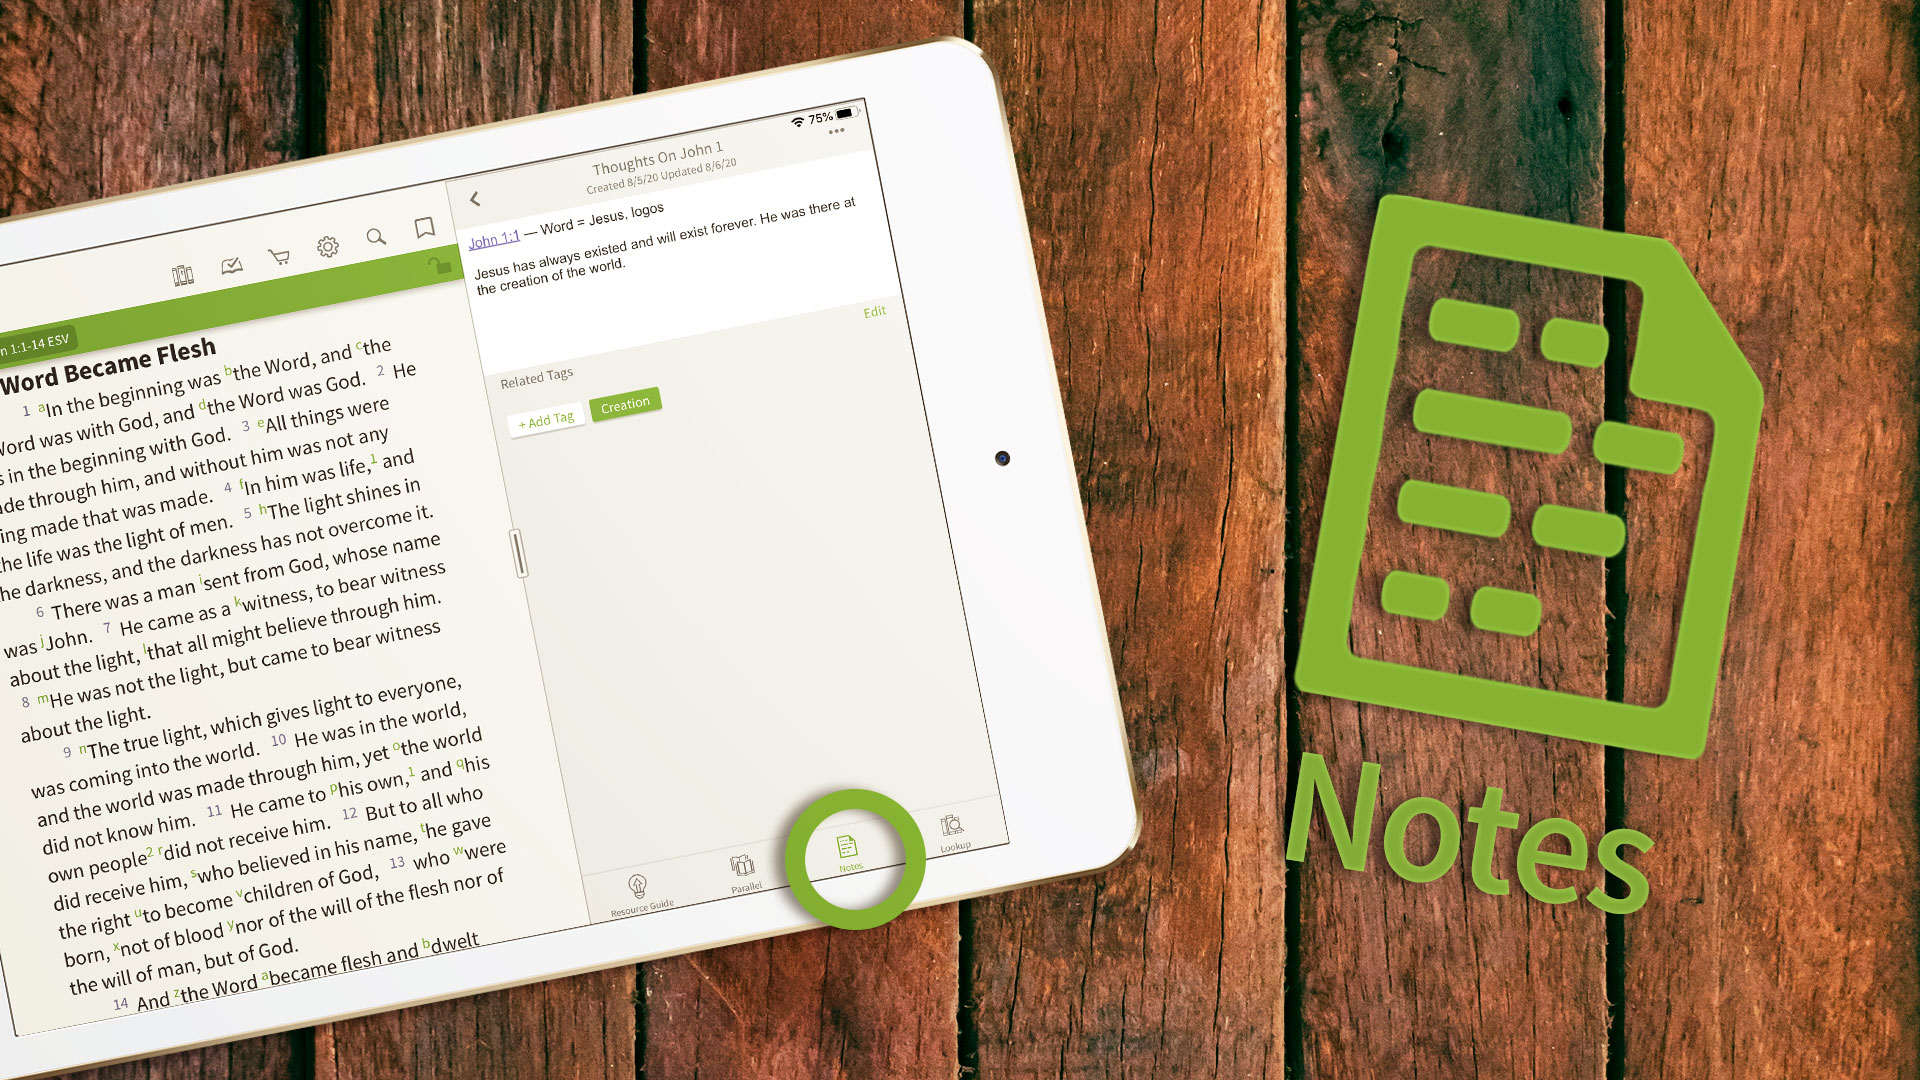 notes in the olive tree bible app